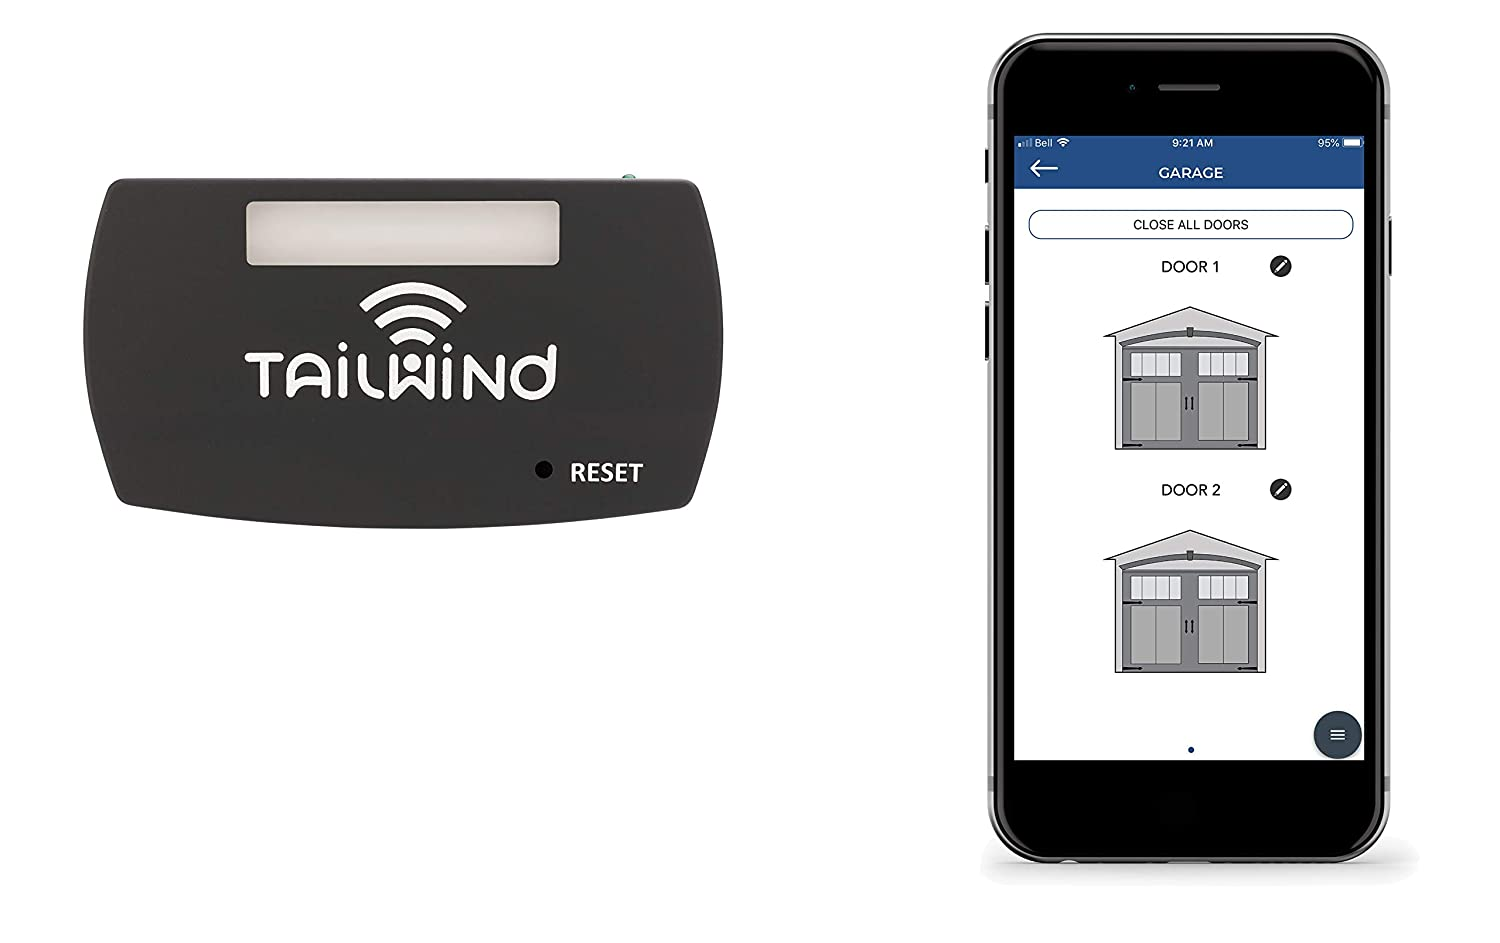 Tailwind iQ3 Smart WiFi Garage Door Opener - Internet Enabled Garage Door Remote Control Compatible With Your Smartphone, Alexa, Google Home, and Siri Shortcuts. Up to 3 Doors.